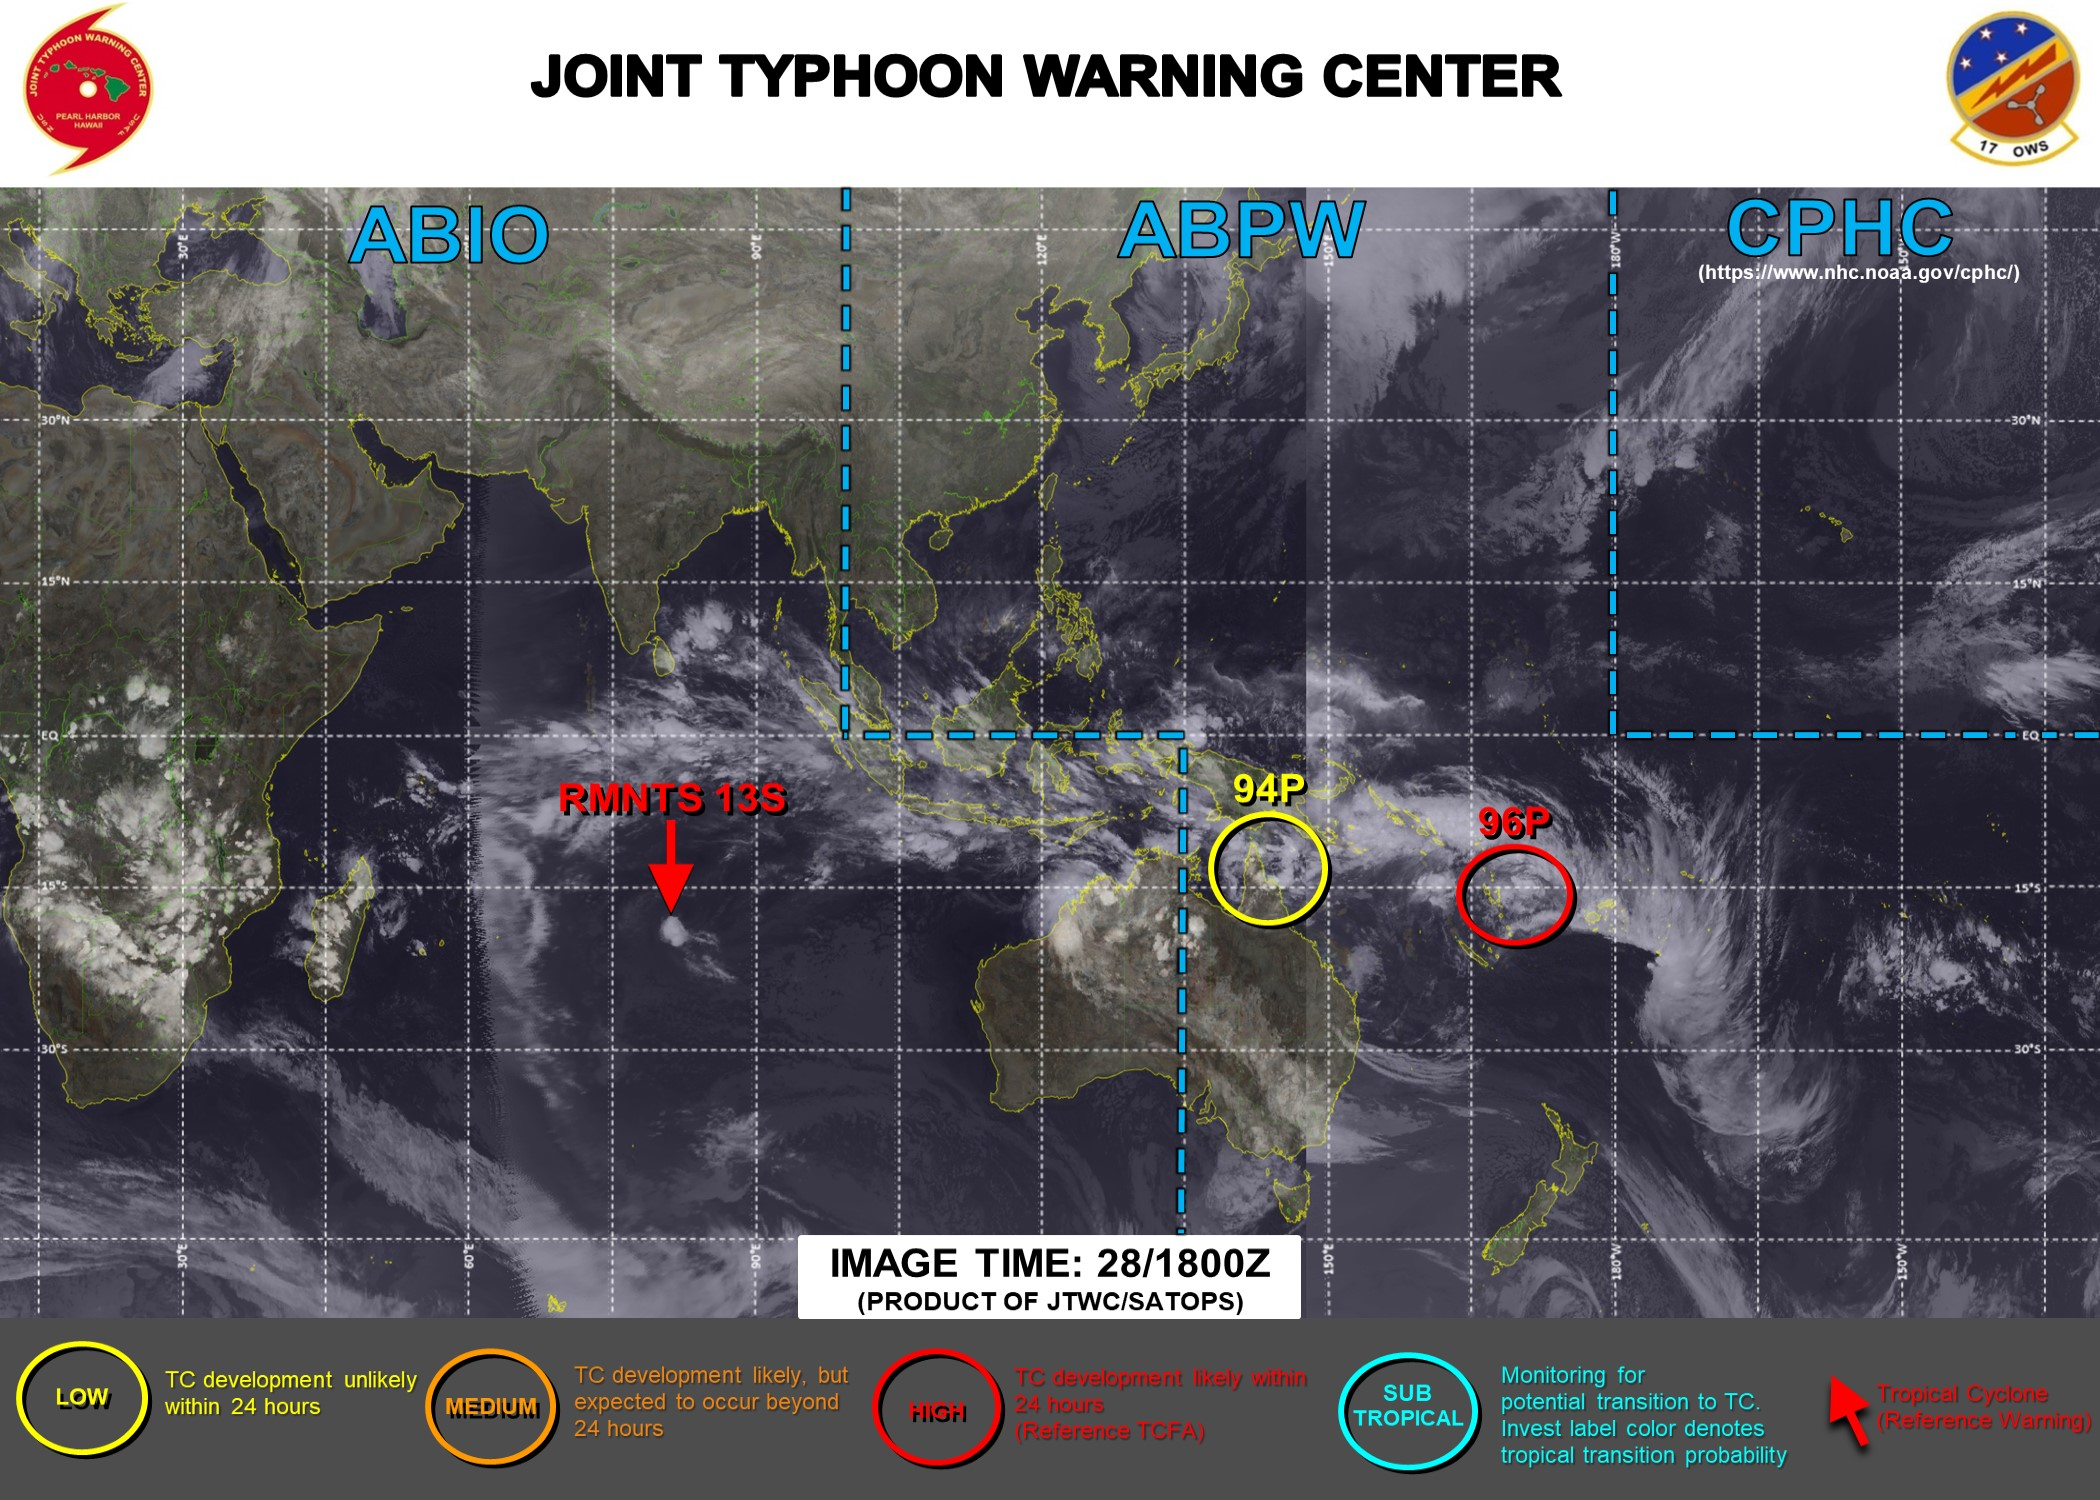 JTWC HAS BEEN ISSUING 3 HOURLY SATELLITE BULLETINS ON THE REMNANTS OF 13S(NONAME) AND INVEST 96P. INVEST 96P HAS BEEN UP-GRADED TO HIGH FOR THE NEXT 24HOURS.